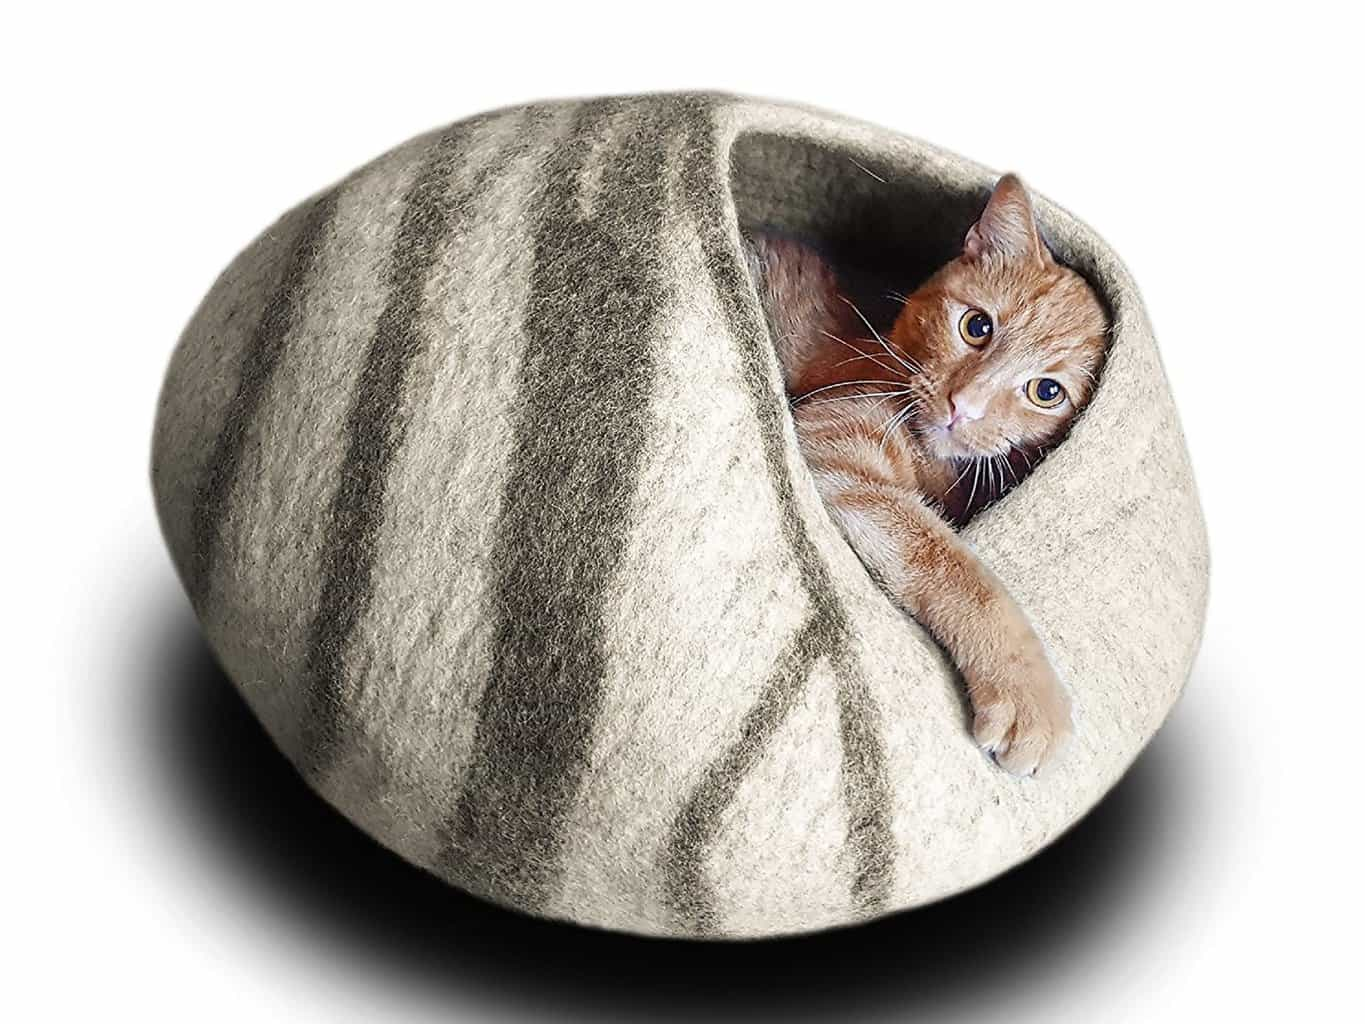 if you love your dog or cat, then check out these #budget-friendly #gift ideas for dogs on Christmas, help you save money and the same time keep the furry friend happy too. pet cat litter box,|#giftideasfordogandcatlovers |pet dog accessories pet activites| #petfunny | Gift ideas for dogs and cats